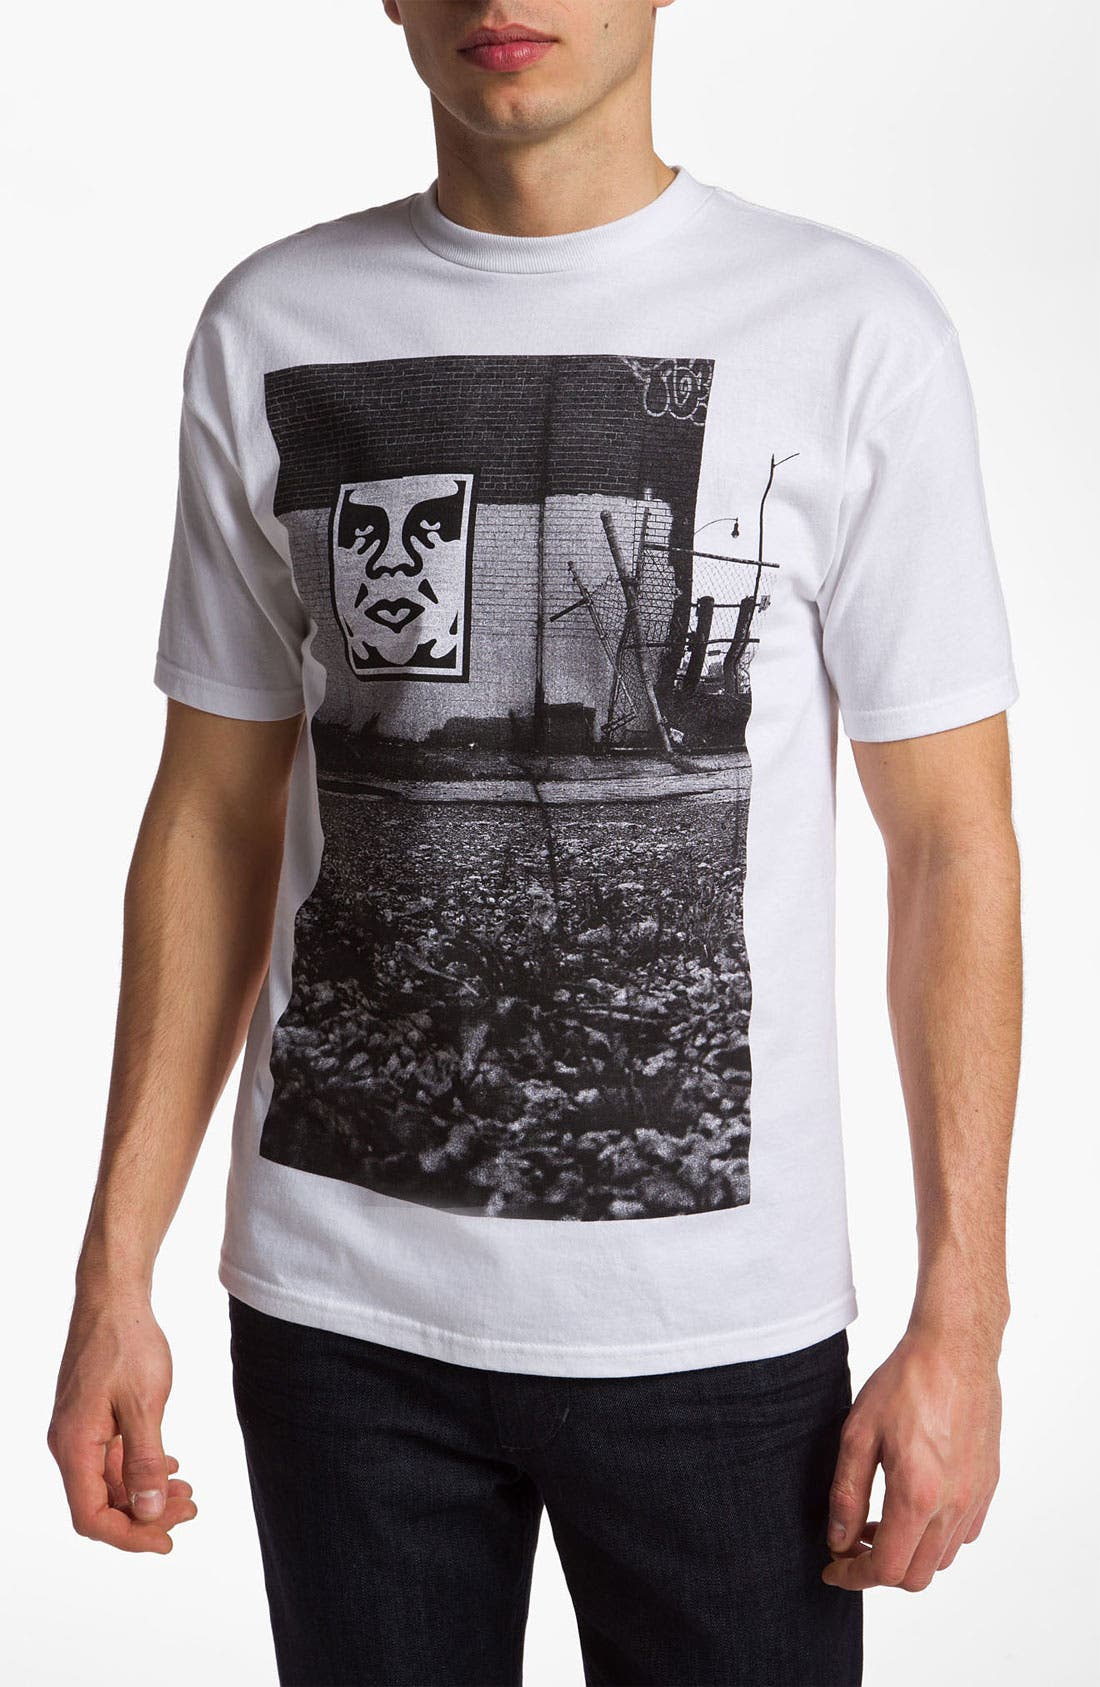 Alternate Image 1 Selected - Obey 'Pittsburgh Photo' Graphic T-Shirt